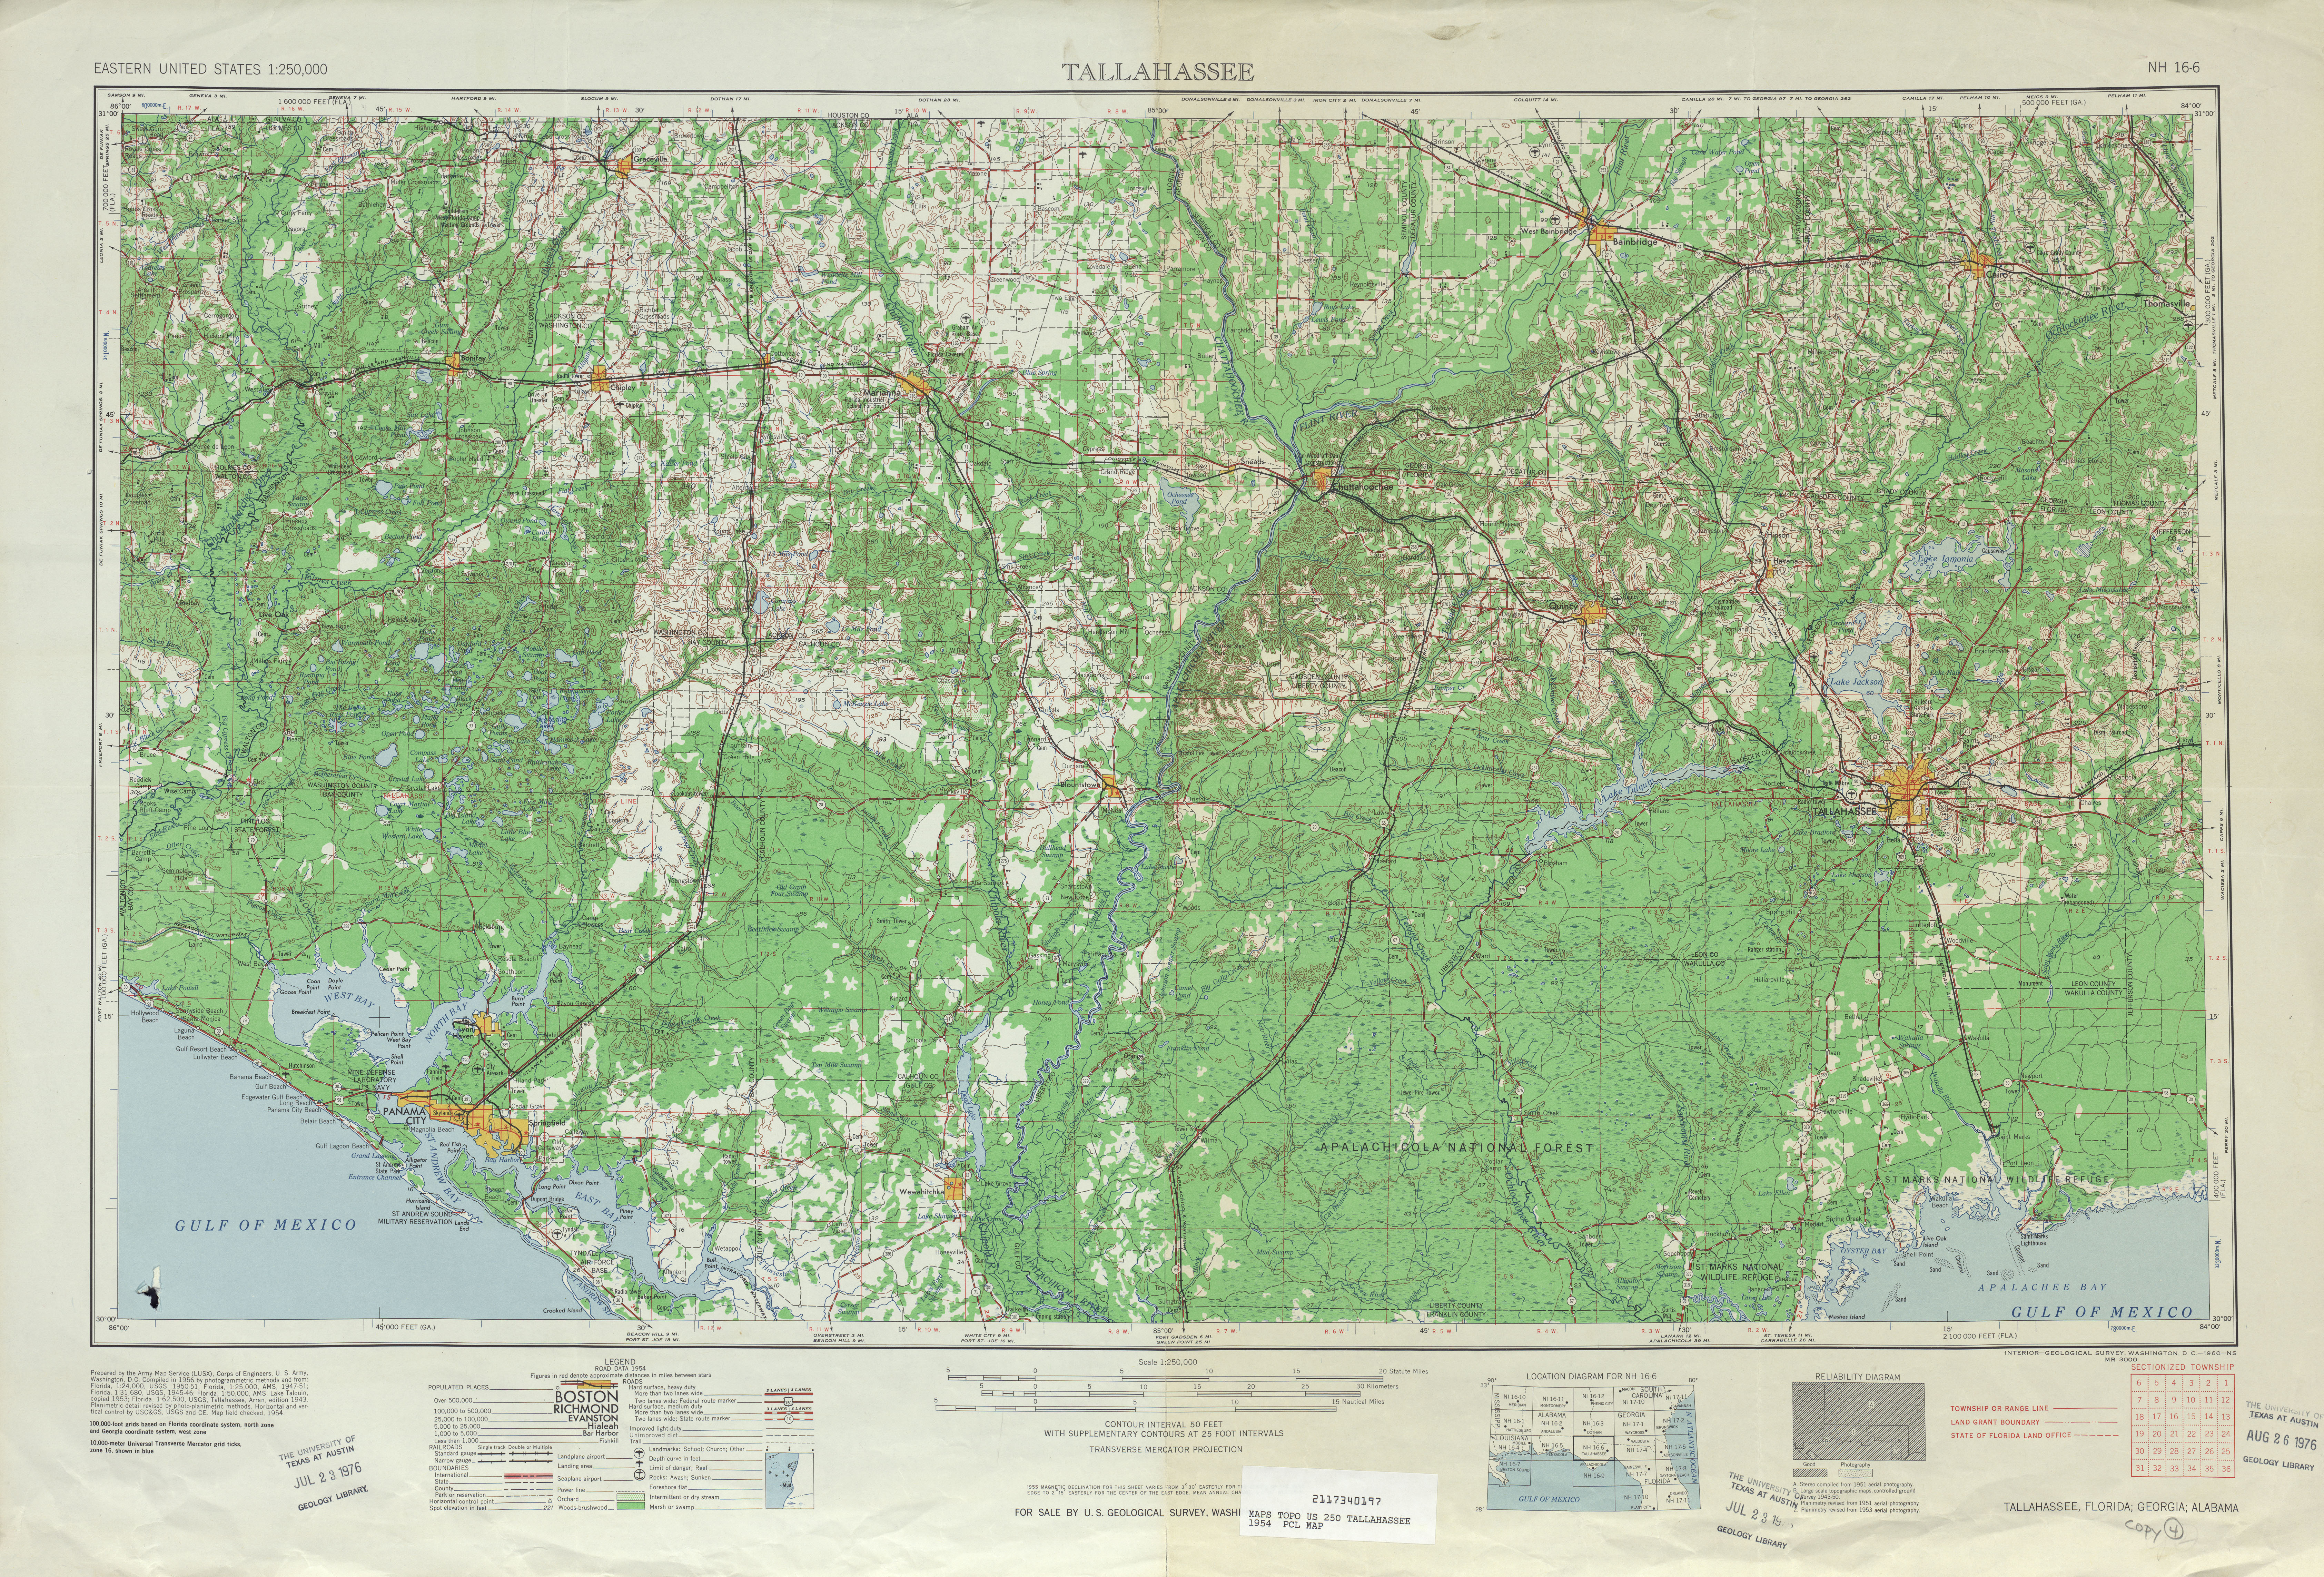 Tallahassee Topographic Map Sheet, United States 1954